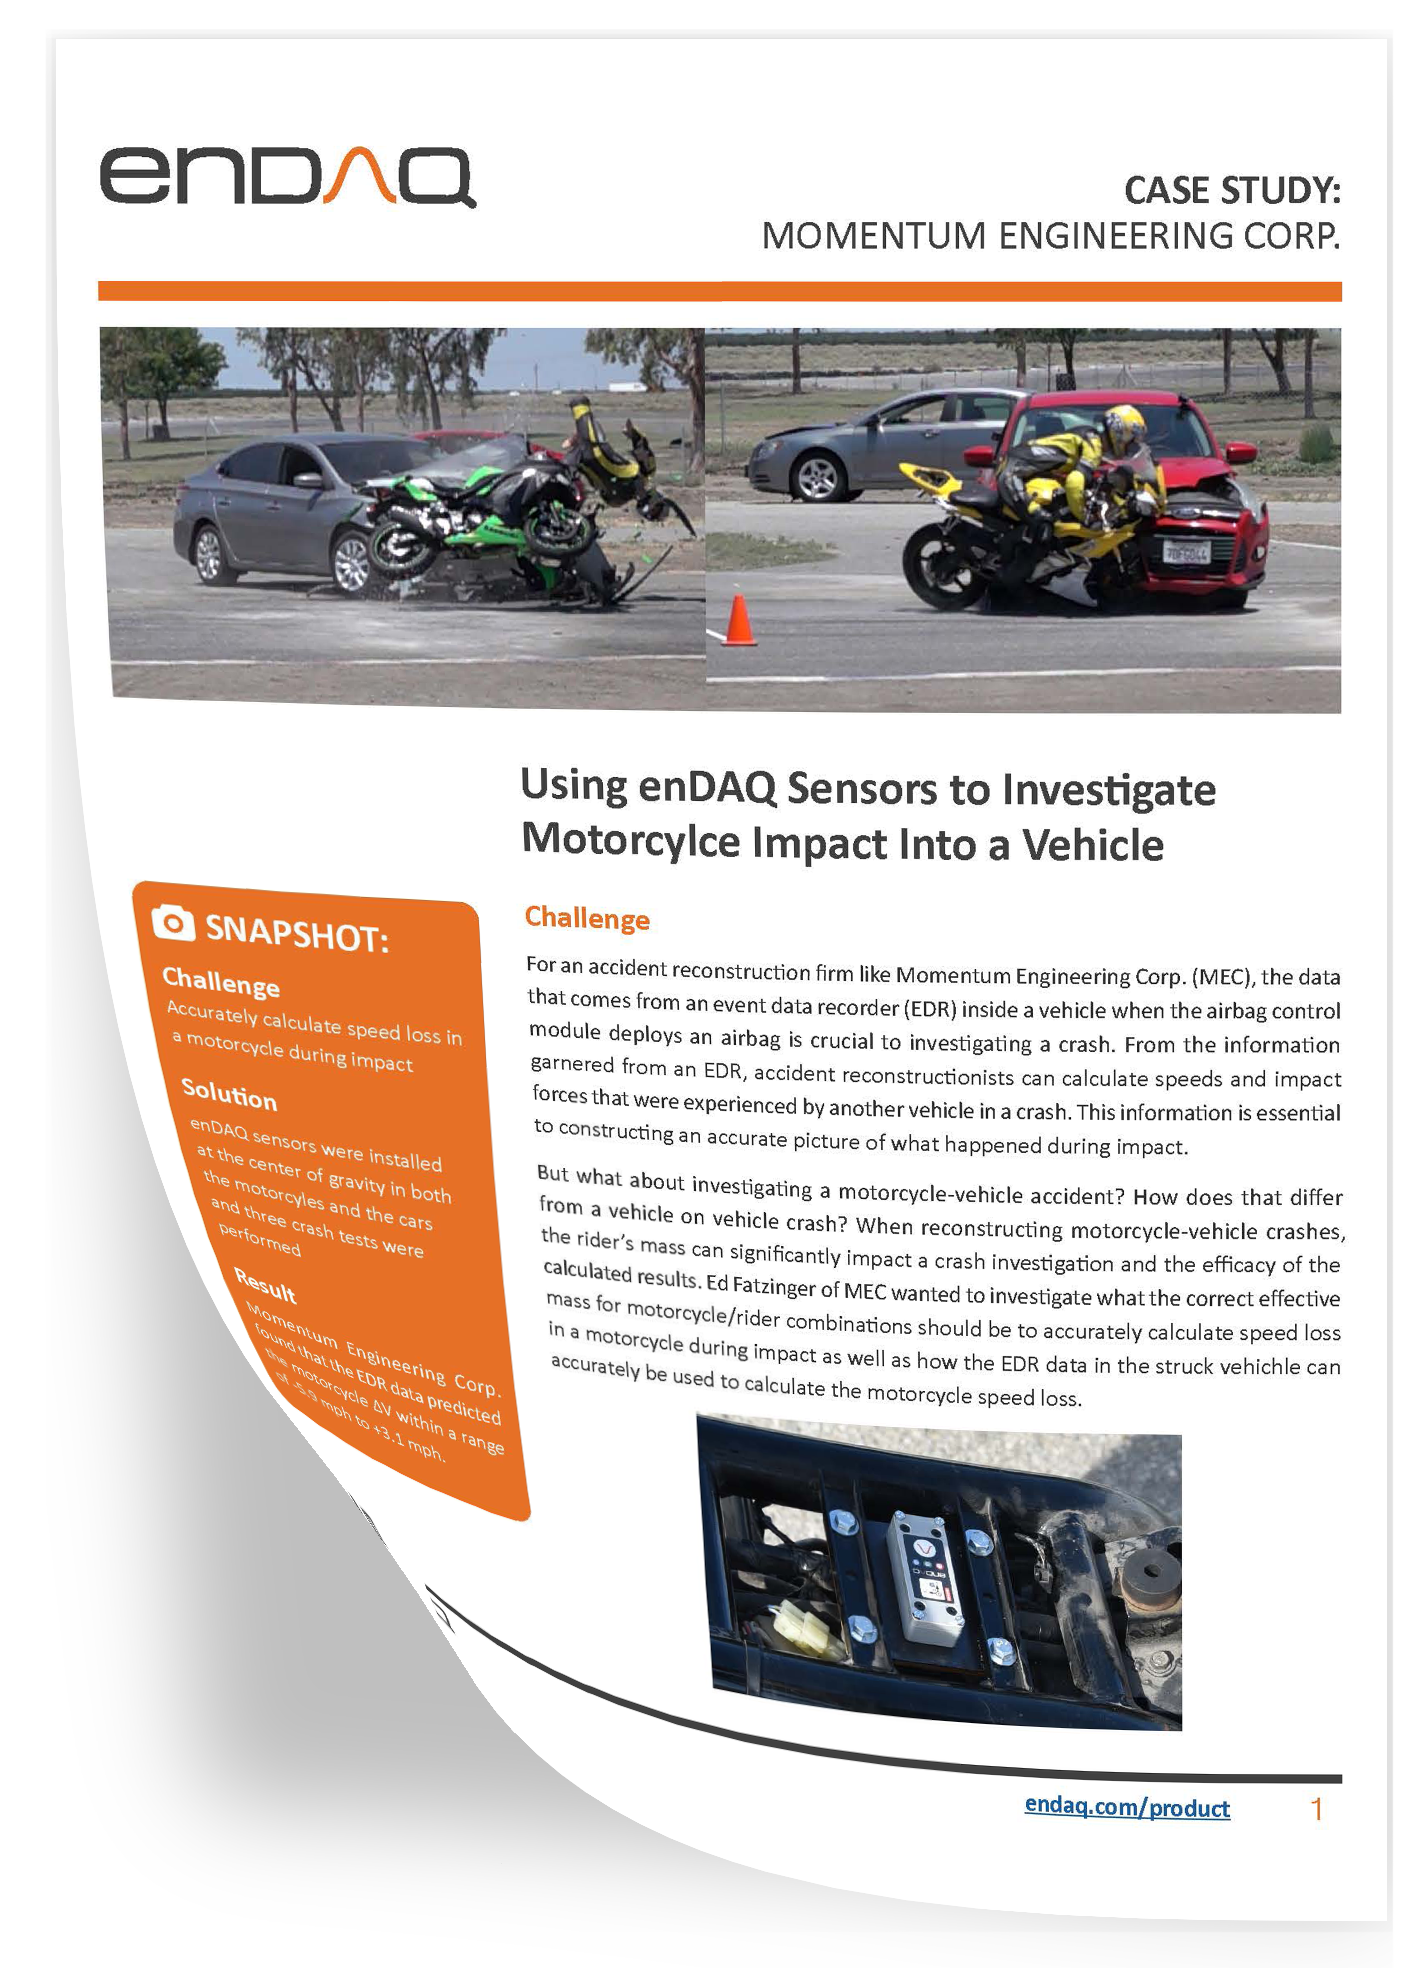 enDAQ Momentum Engineering Corp. Car Crash Case Study